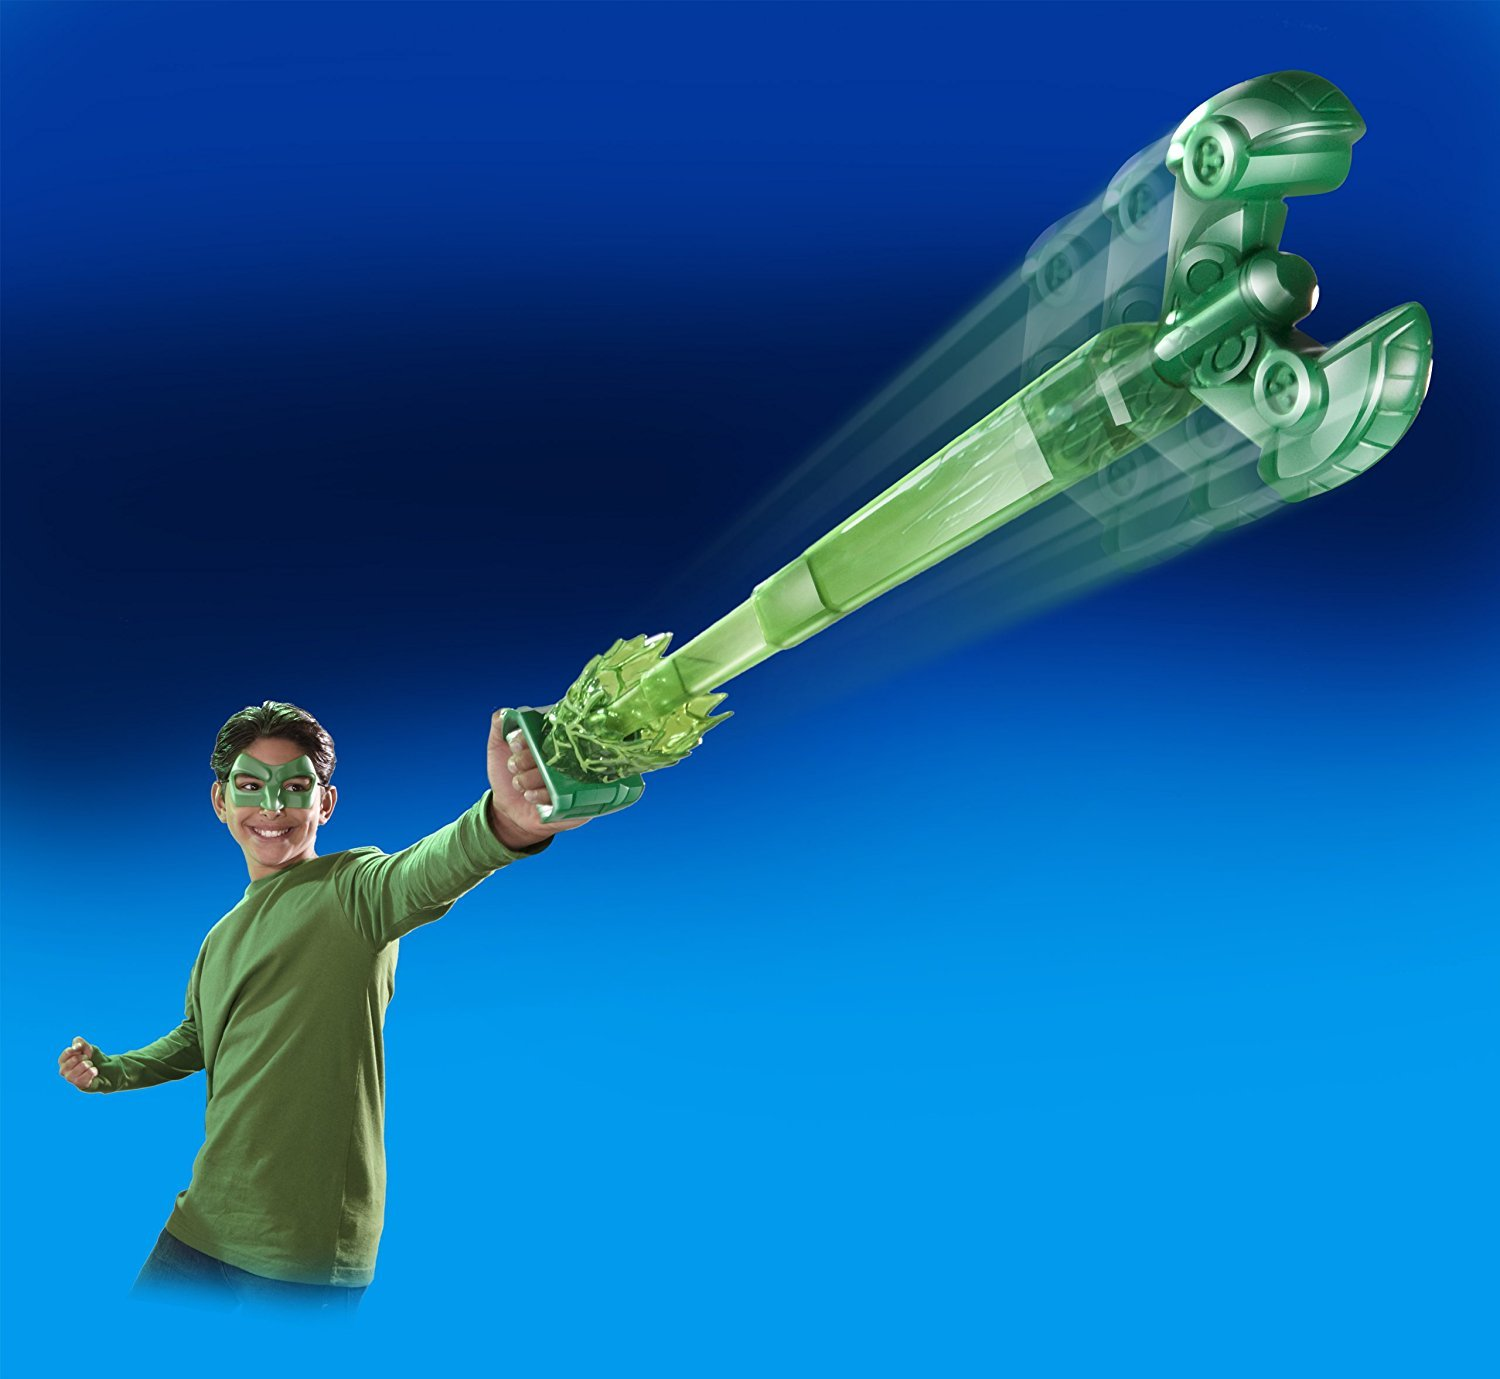 Green Lantern Movie Cosmic Claw Roleplay Toy (Mattel Toys) 2 to 4 Years